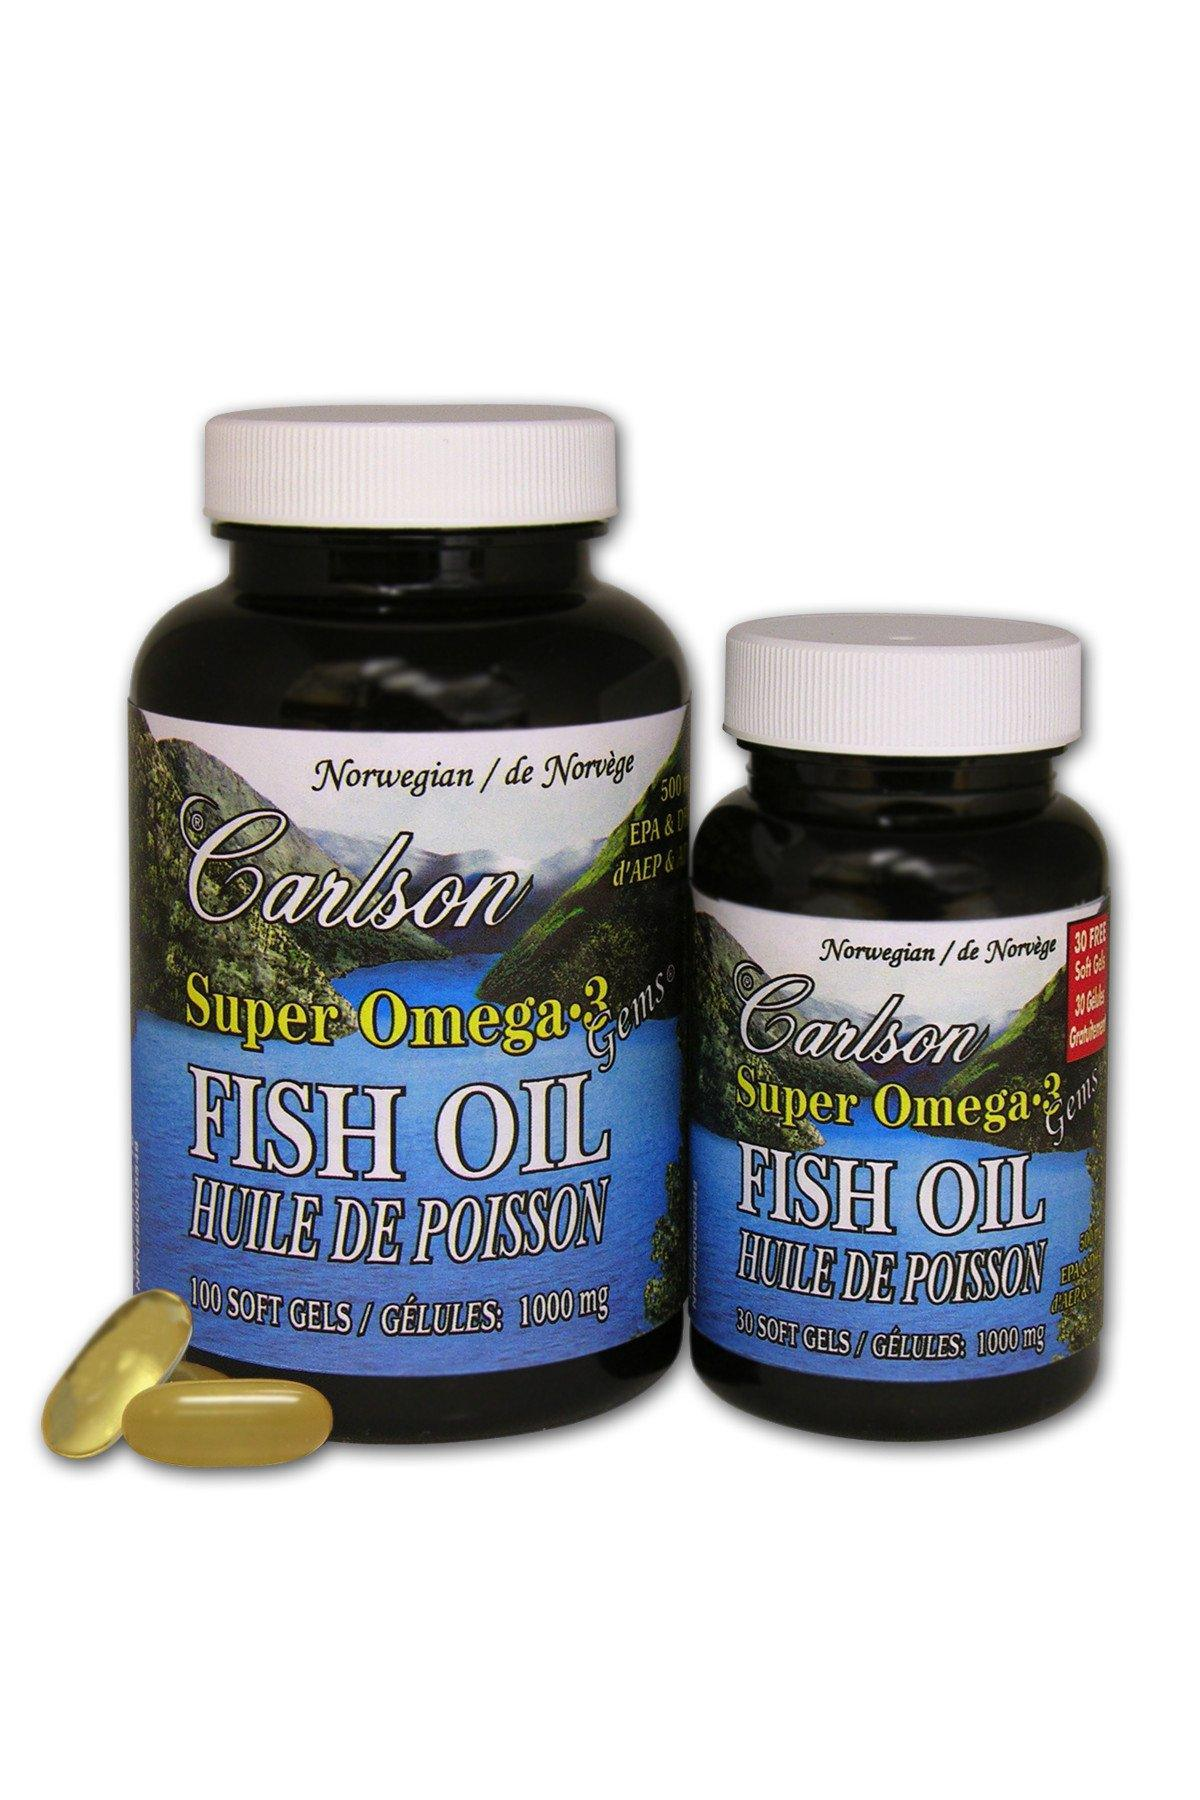 Supplements & Vitamins - Carlson - Super Omega3 Fish Oil, 100+30 Duo Pack